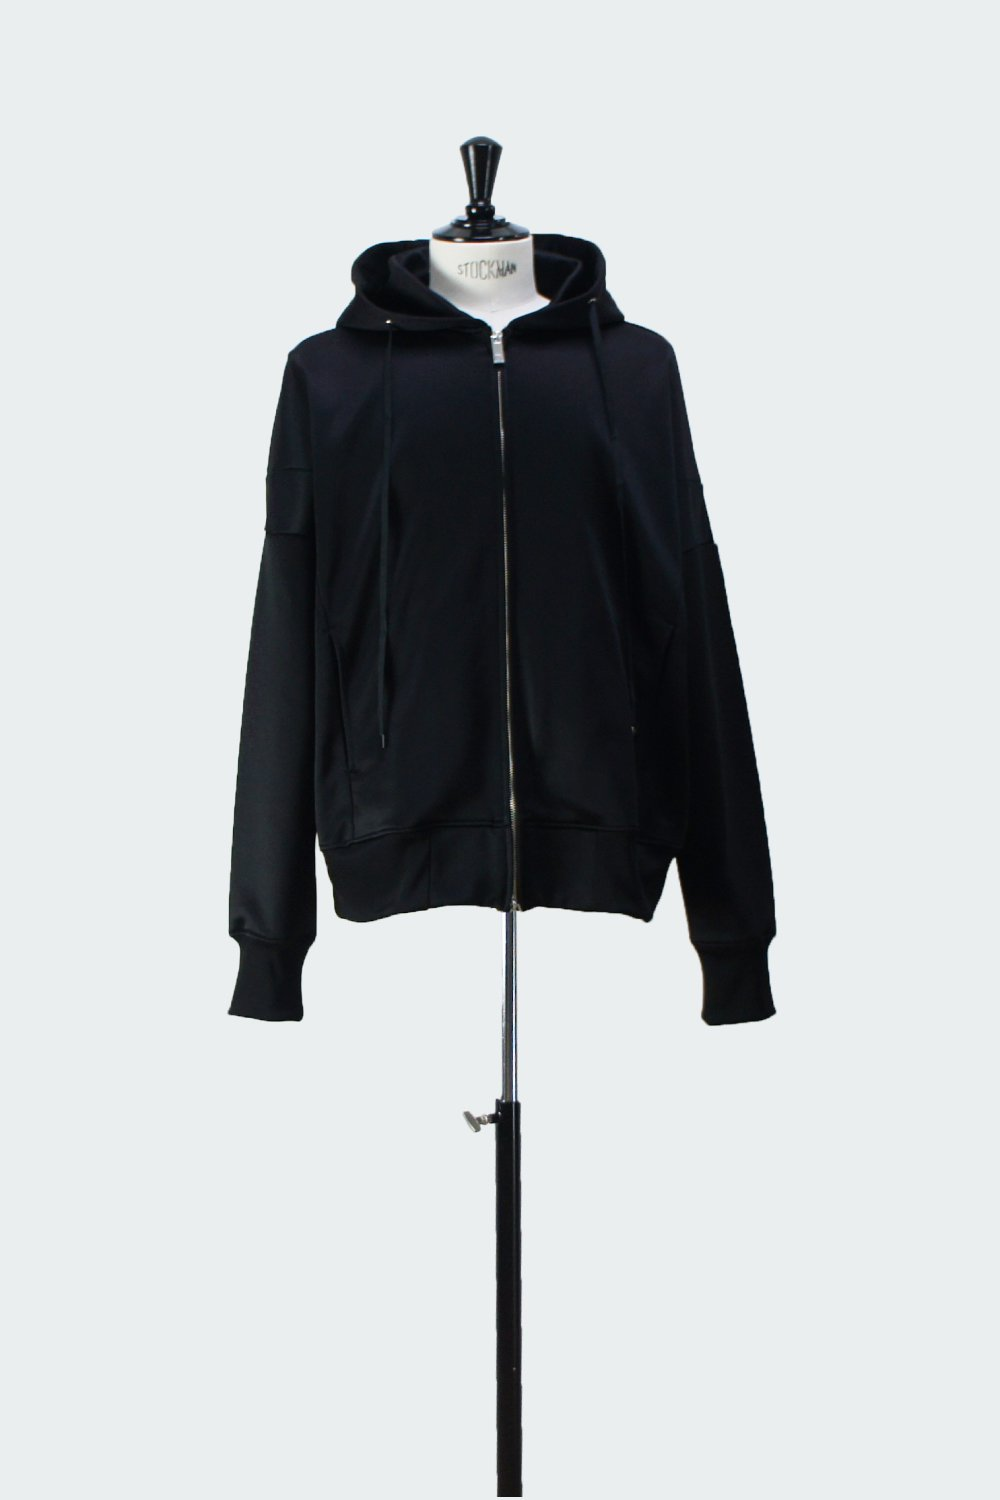 <img class='new_mark_img1' src='https://img.shop-pro.jp/img/new/icons8.gif' style='border:none;display:inline;margin:0px;padding:0px;width:auto;' />ZIP UP HOODIE BLACK